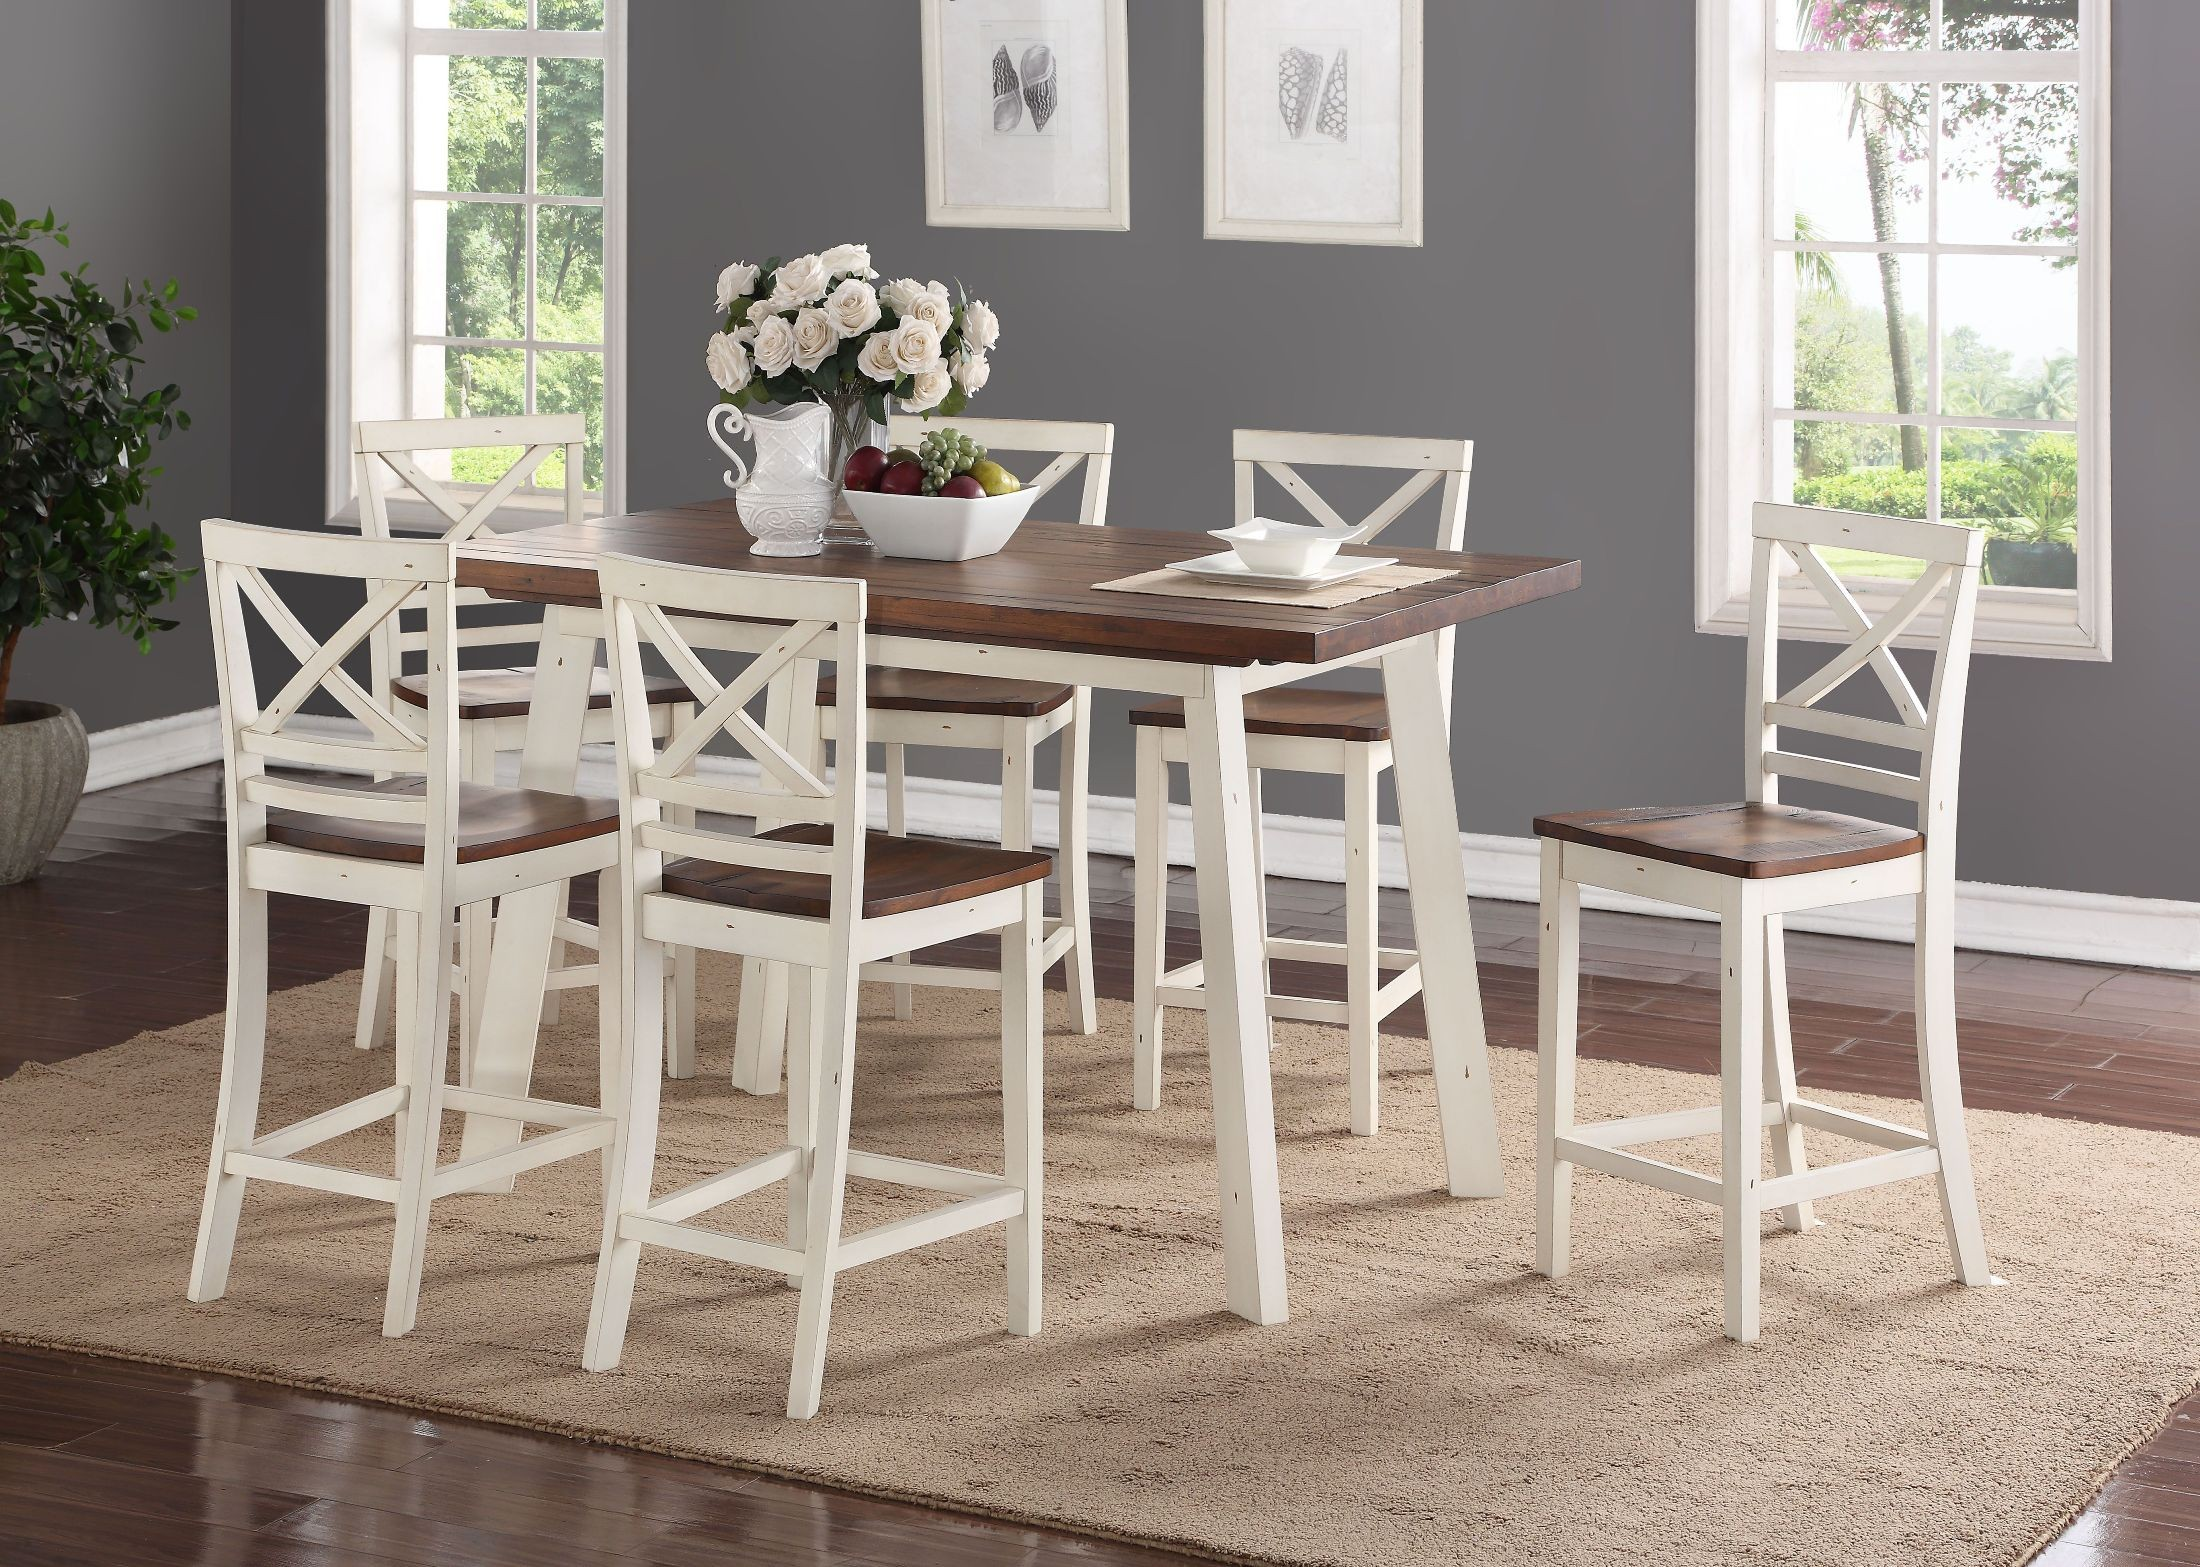 White Dining Table Set Amelia White And Chestnut Counter Height Dining Table Set